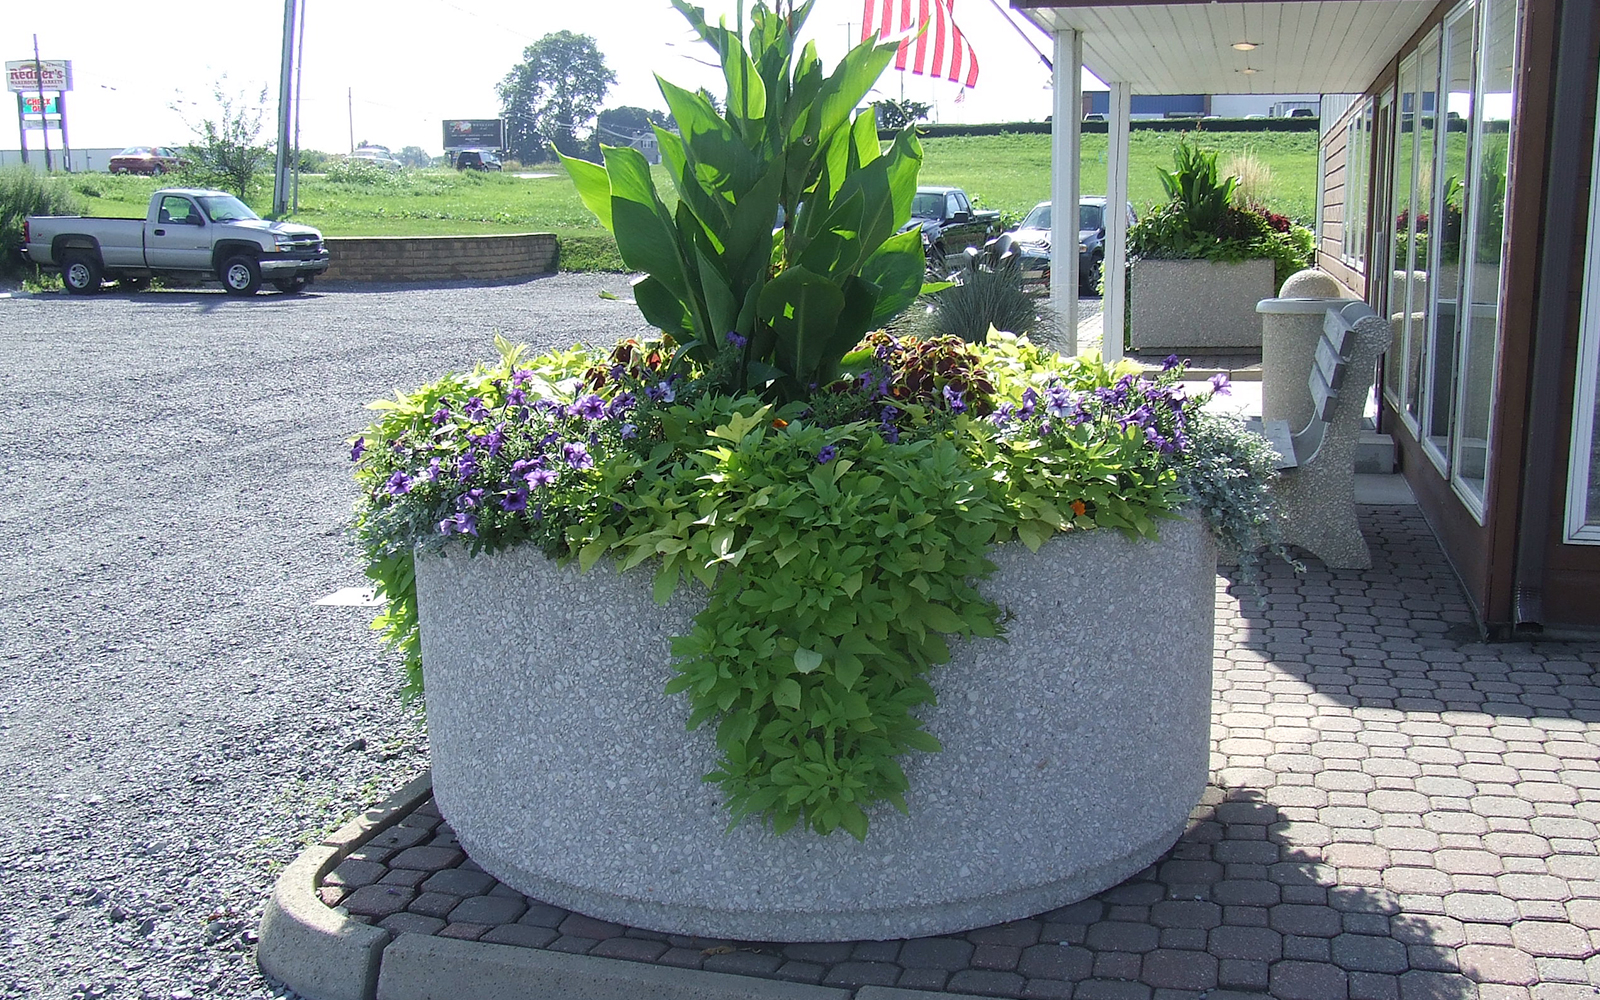 redi-guard-round-planter-with-plants